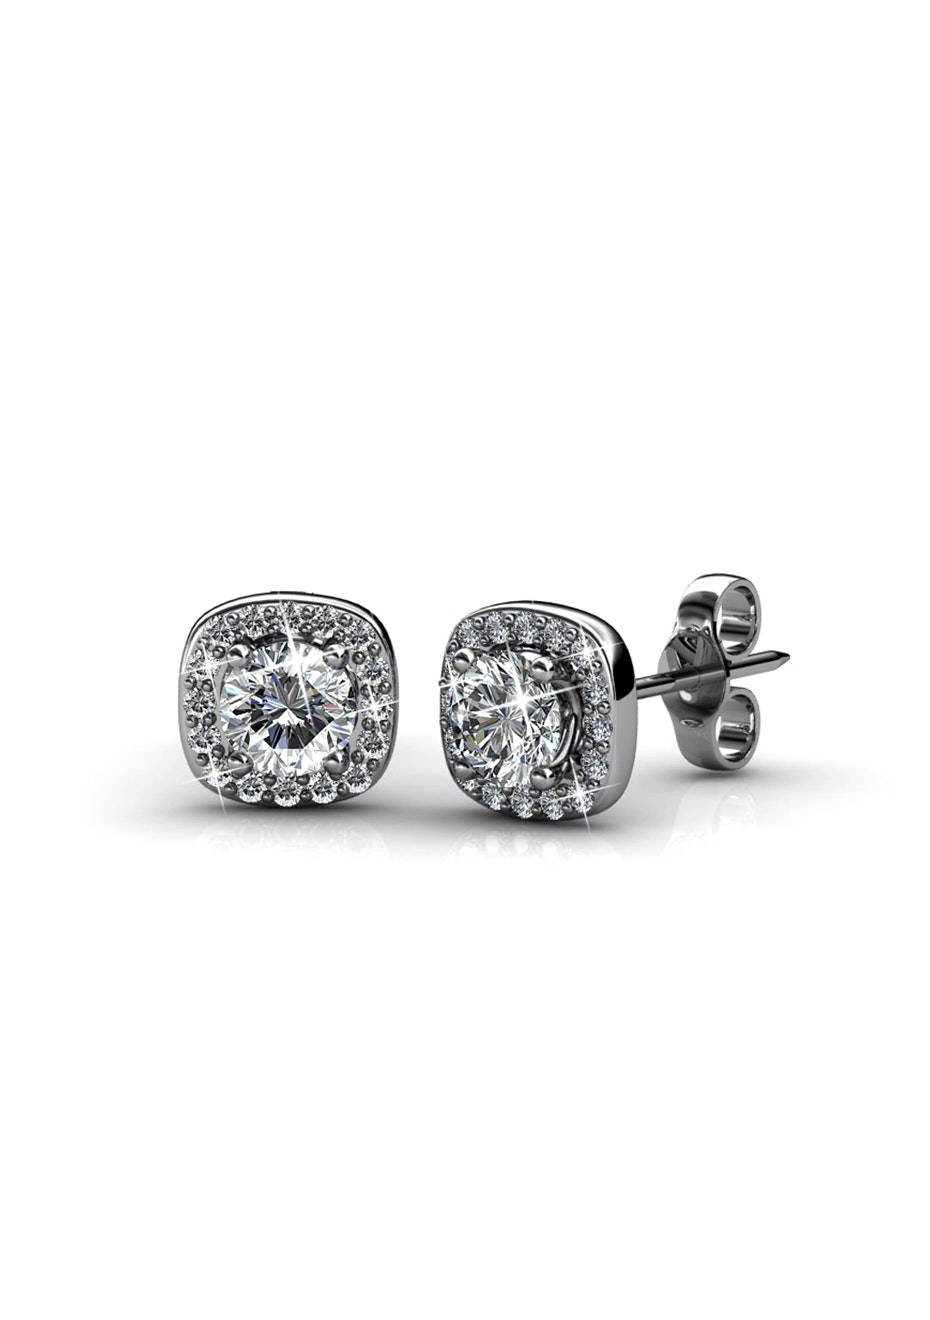 Luxor Stud Earrings Embellished with Crystals from Swarovski